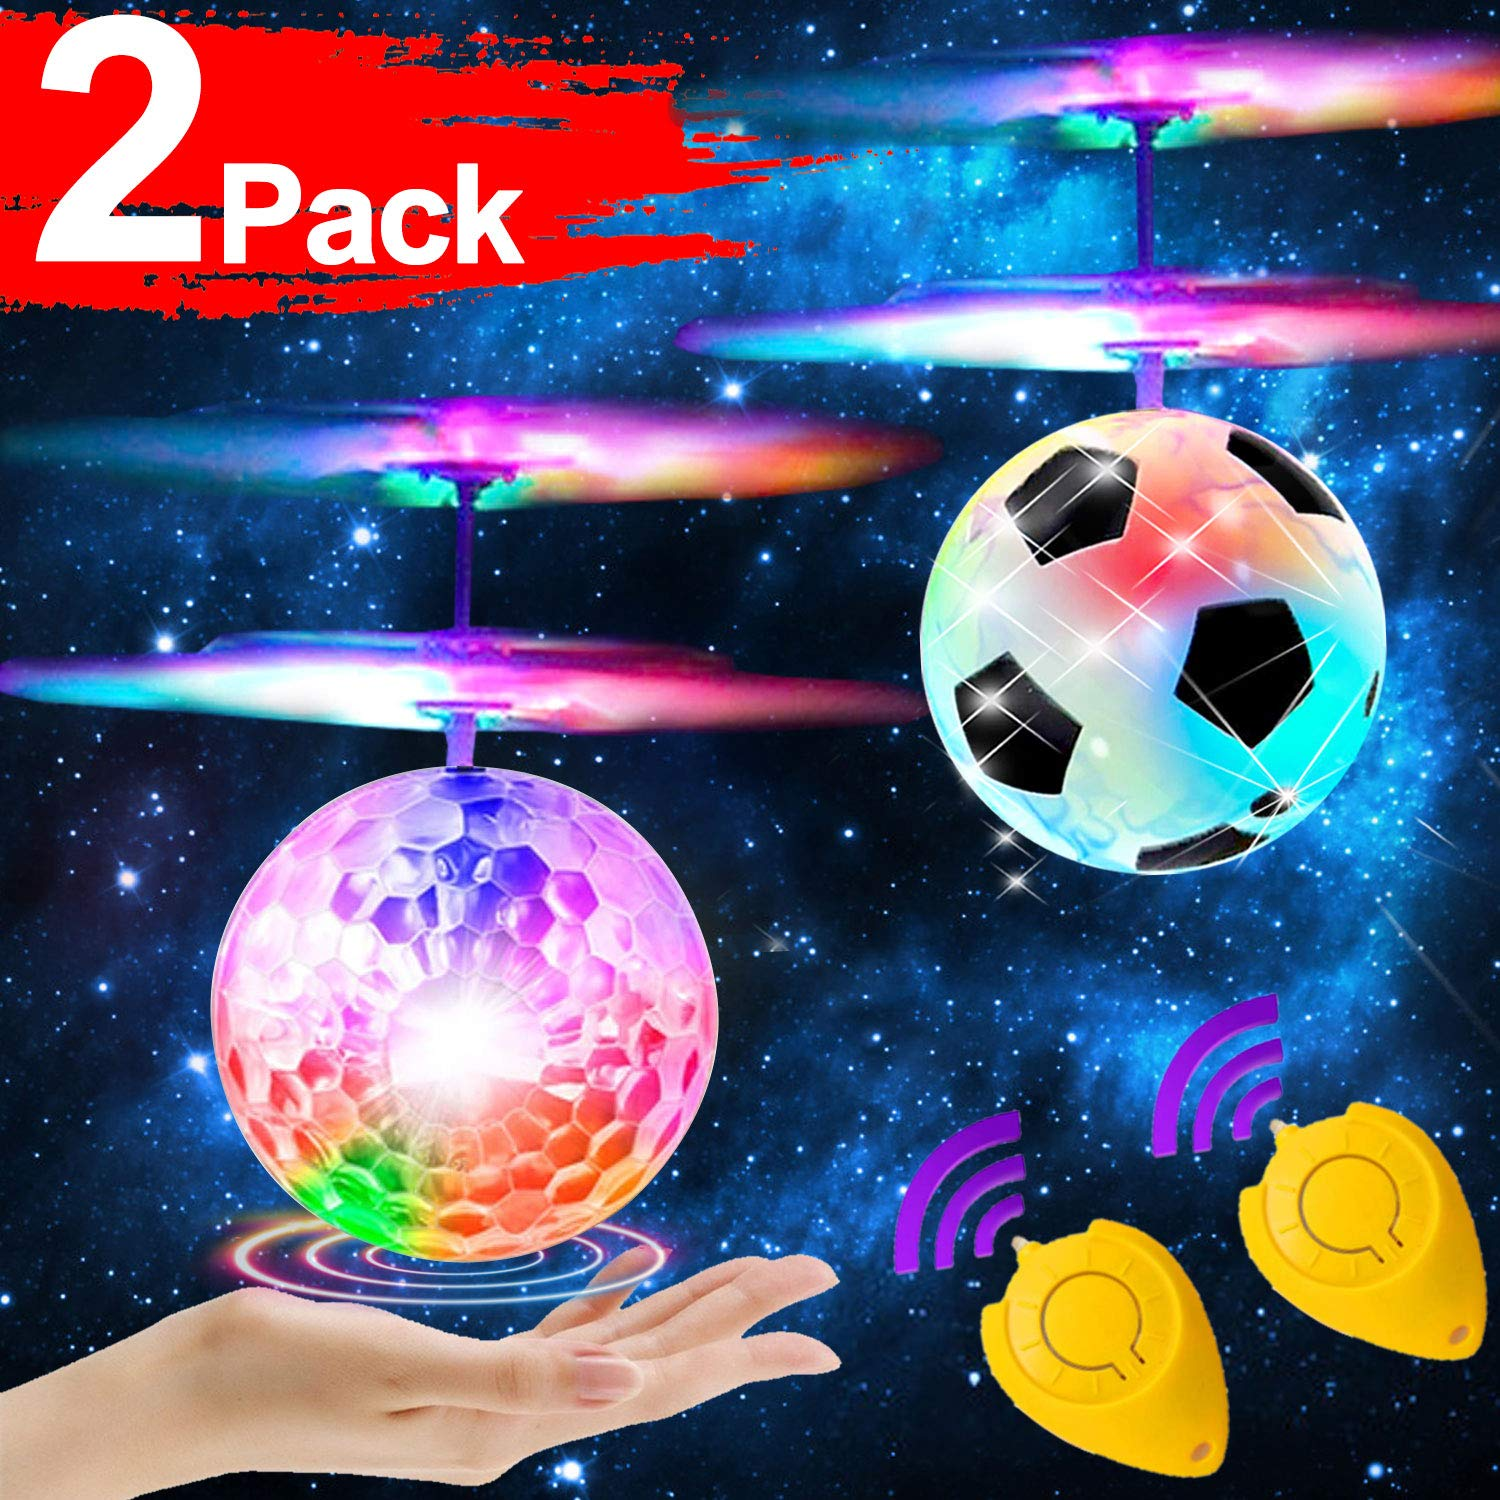 2 Pack Flying Ball for 6, 7, 8, 9, 10, 11, 12,13,14 Year Old Boys Girls Kids RC Flying Ball with Remote Control Glow Mini Drones Hand Controll Helicopter Light Up Balls Toys Indoor Outdoor Games by iGeeKid